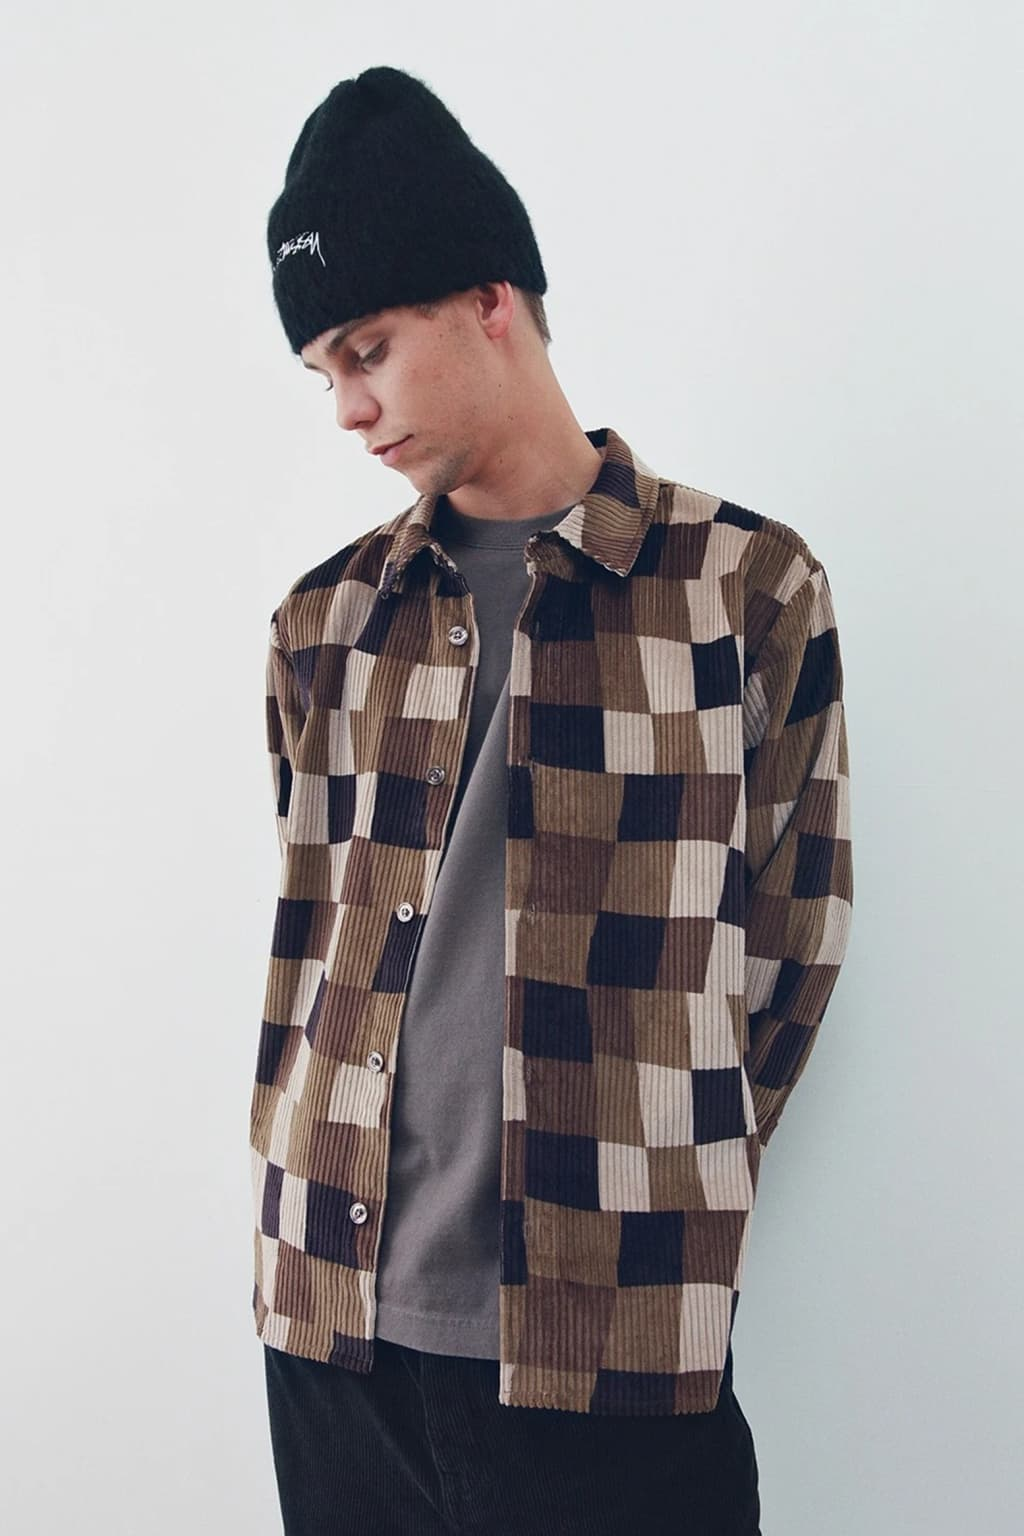 Fall pieces from Stüssy